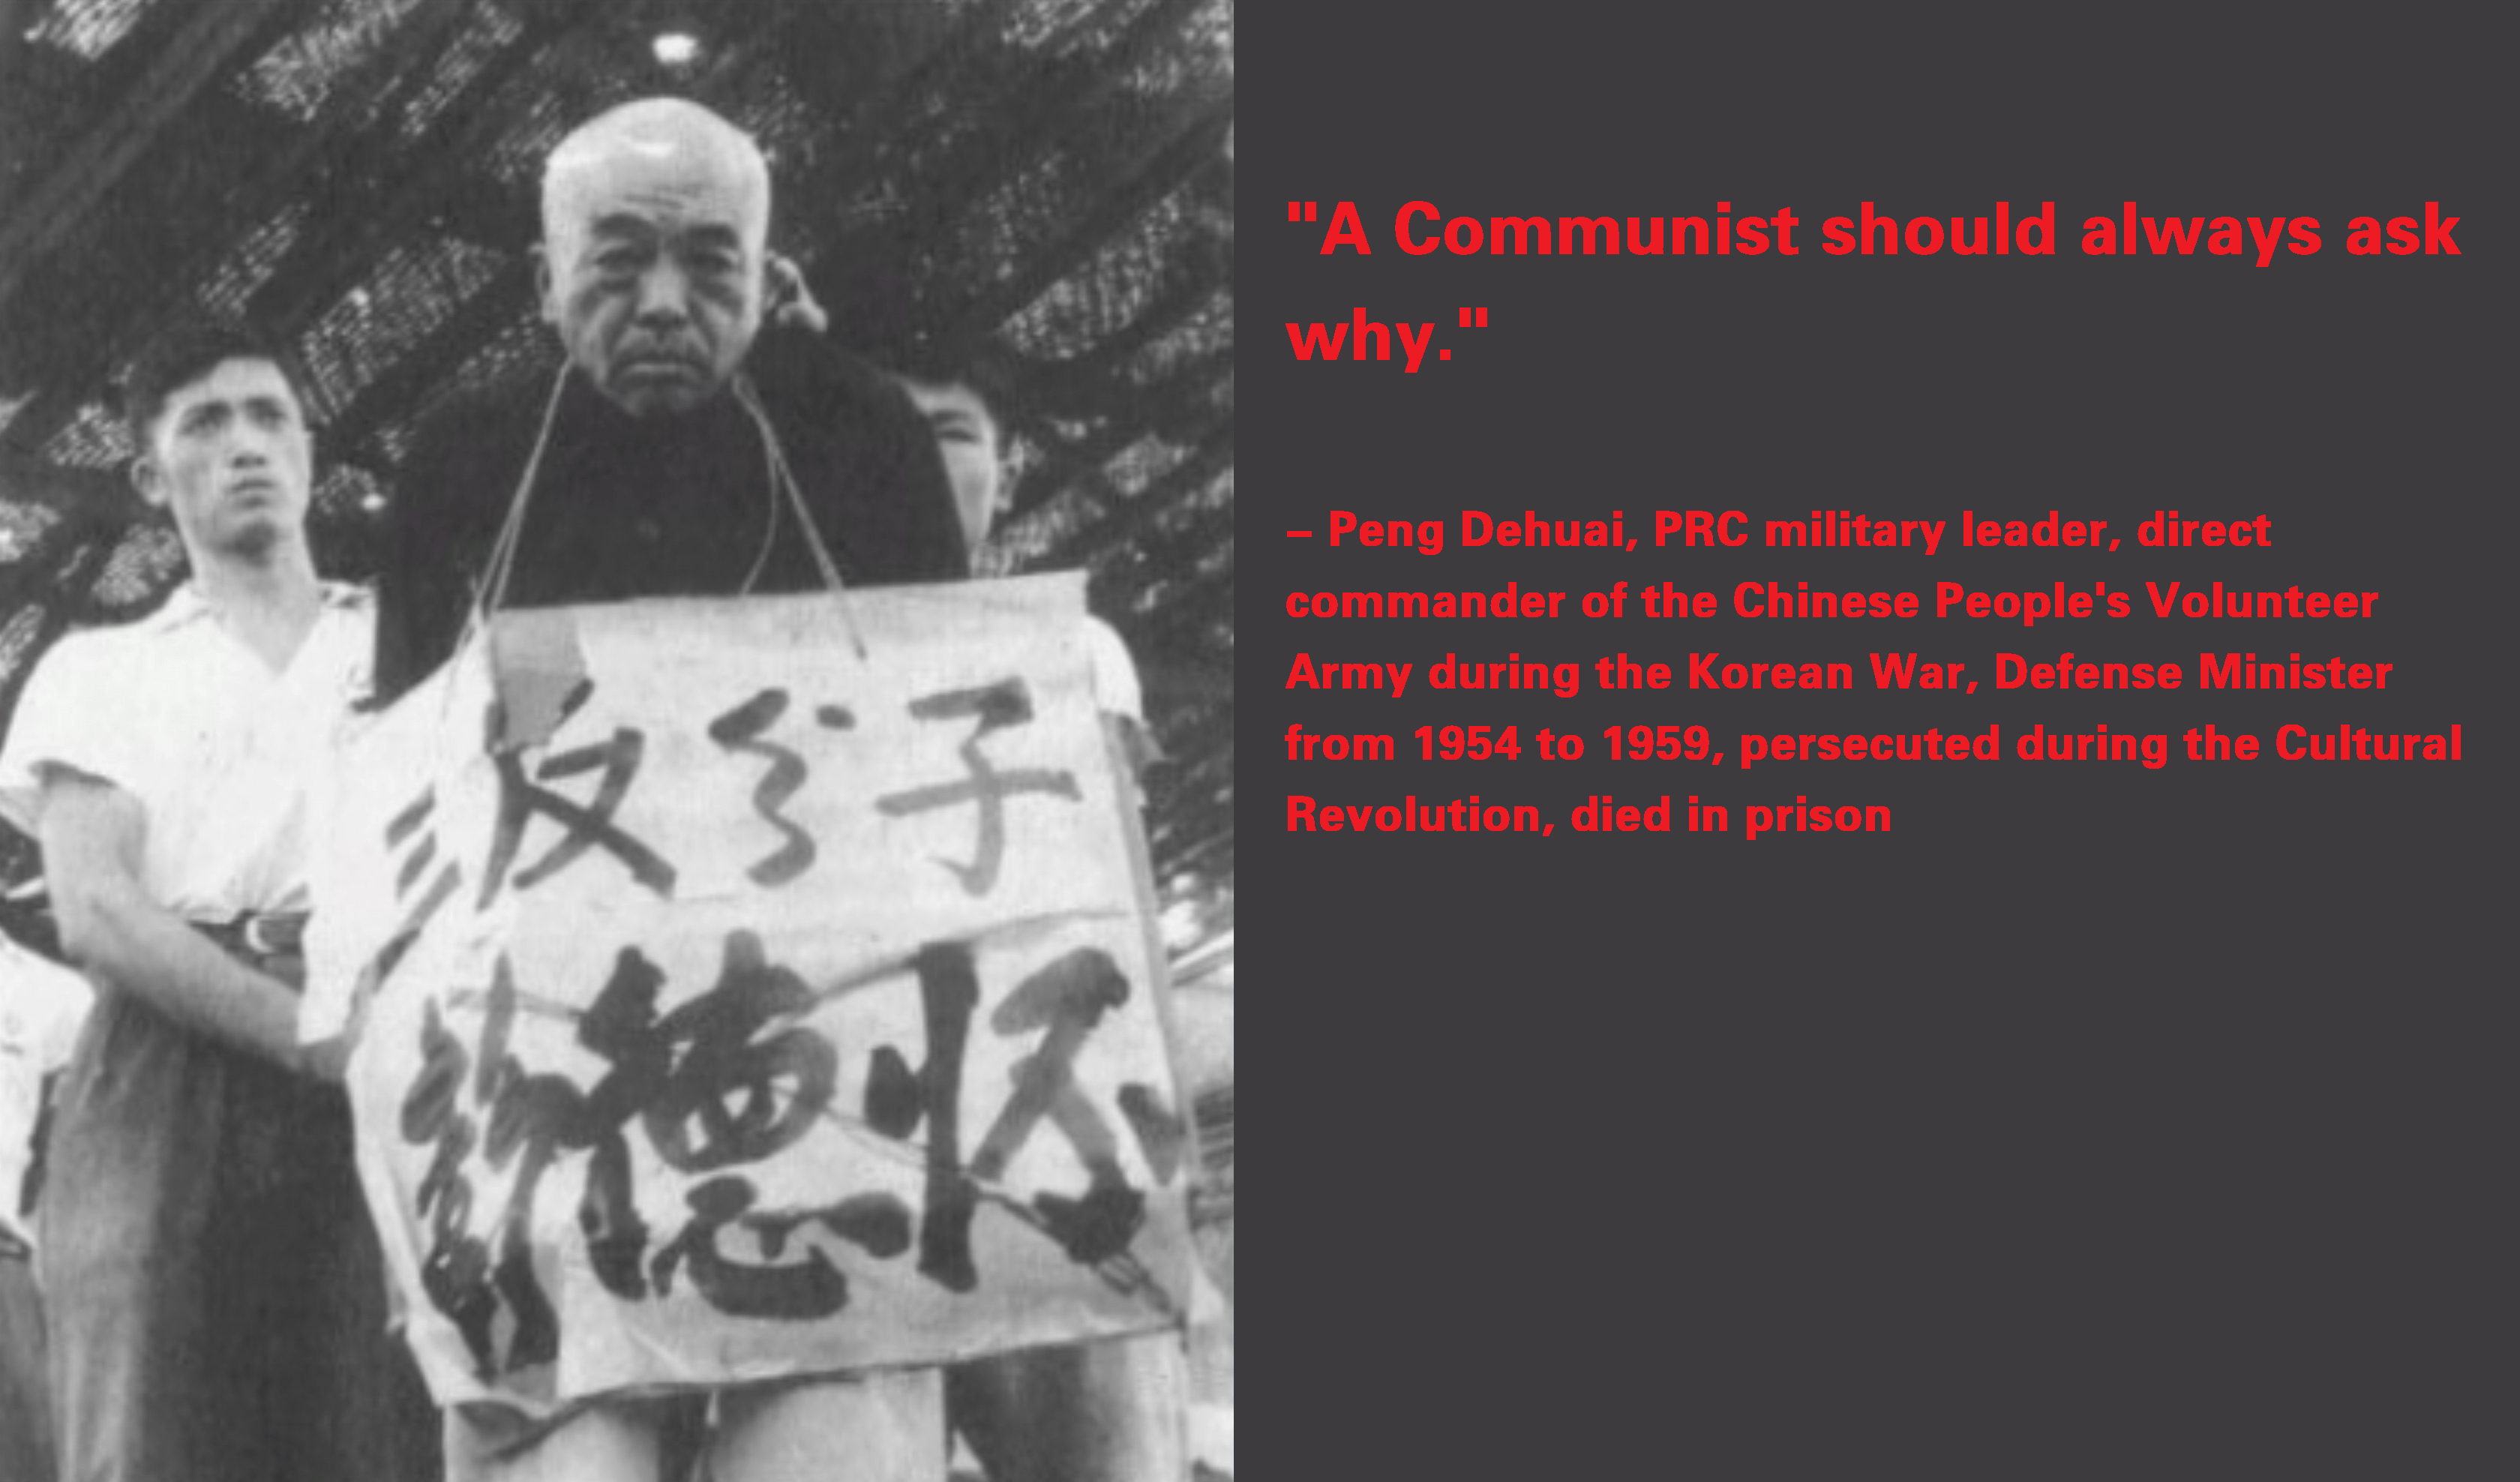 """A Communist should always ask why."" – Peng Dehuai [3360×1976]"